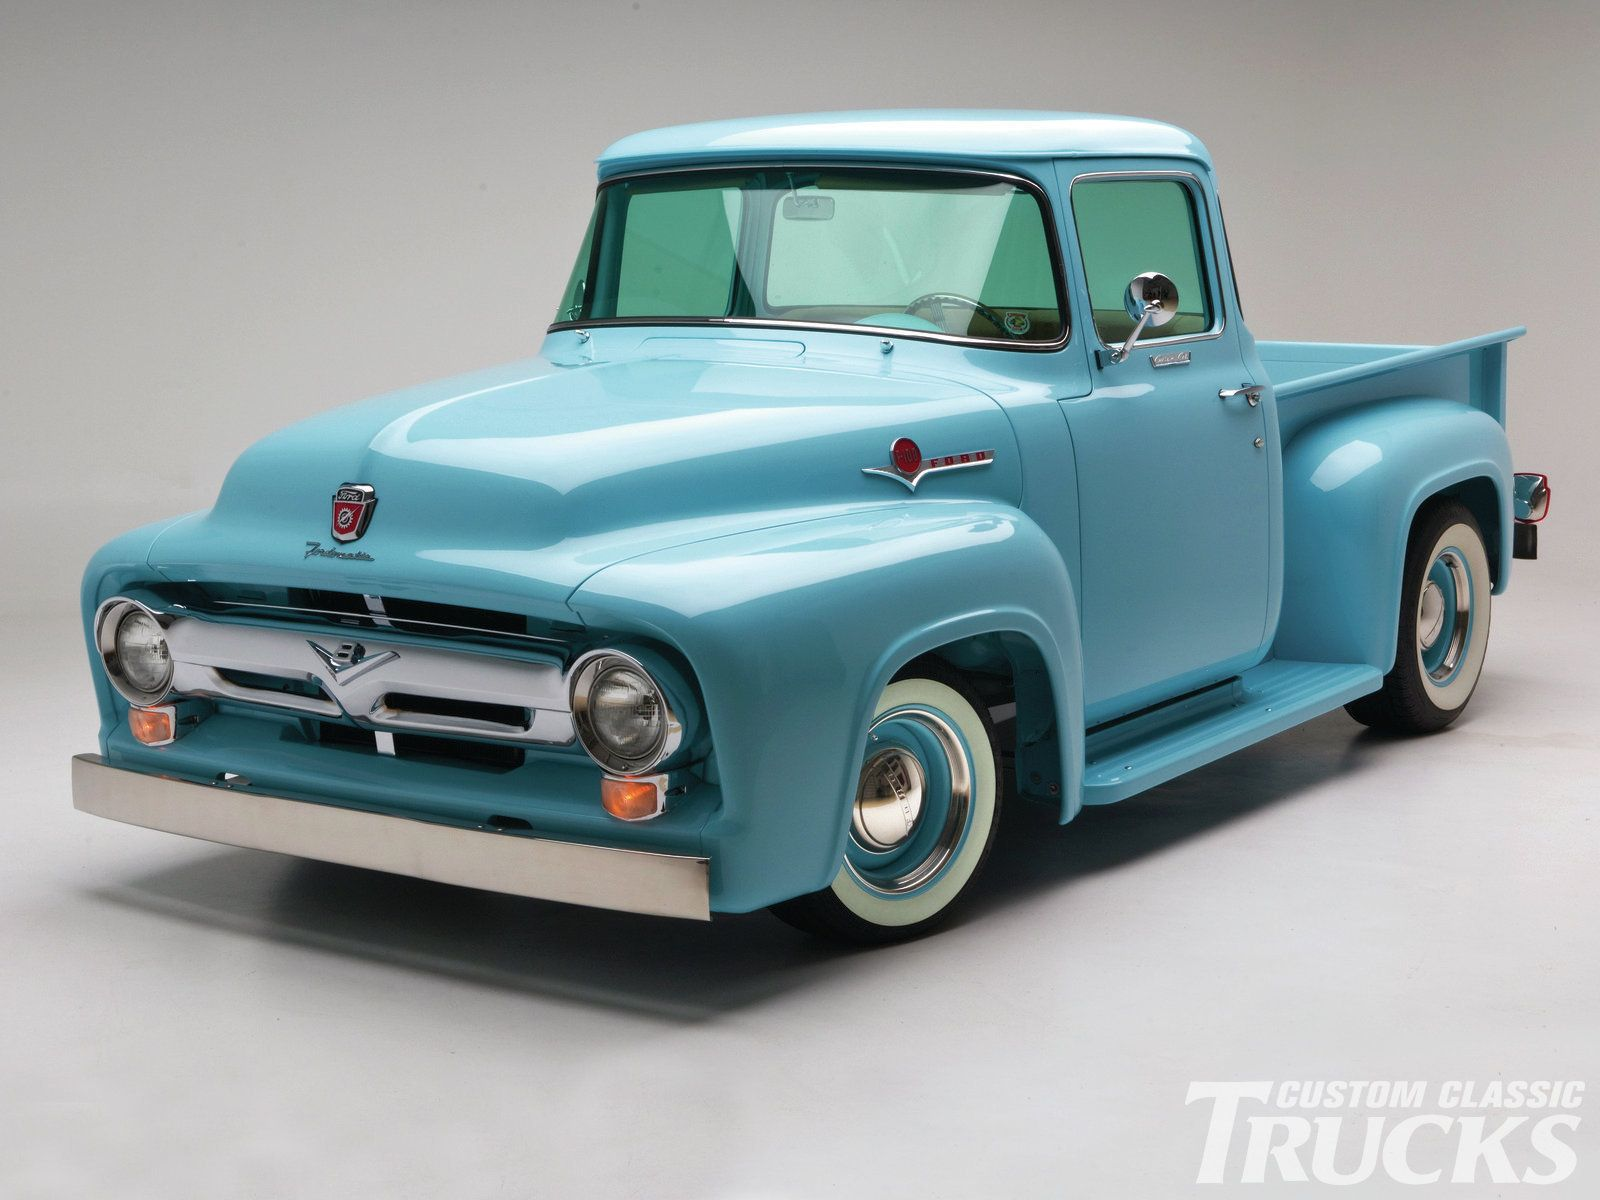 1955 ford f100 street rod truck sold - We Have The Second Generation Ford Trucks Listed With Different Colors And Options For Sale